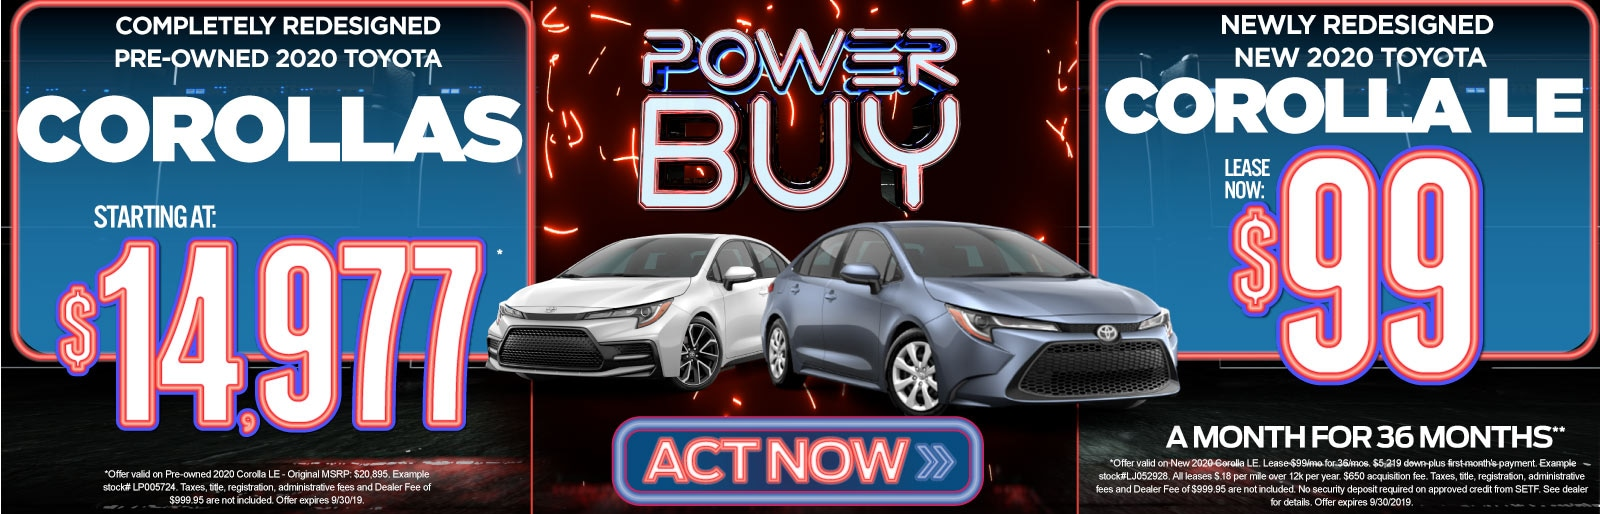 Toyota Of South Florida >> Palm Beach Toyota New And Used Toyota Cars In West Palm Beach